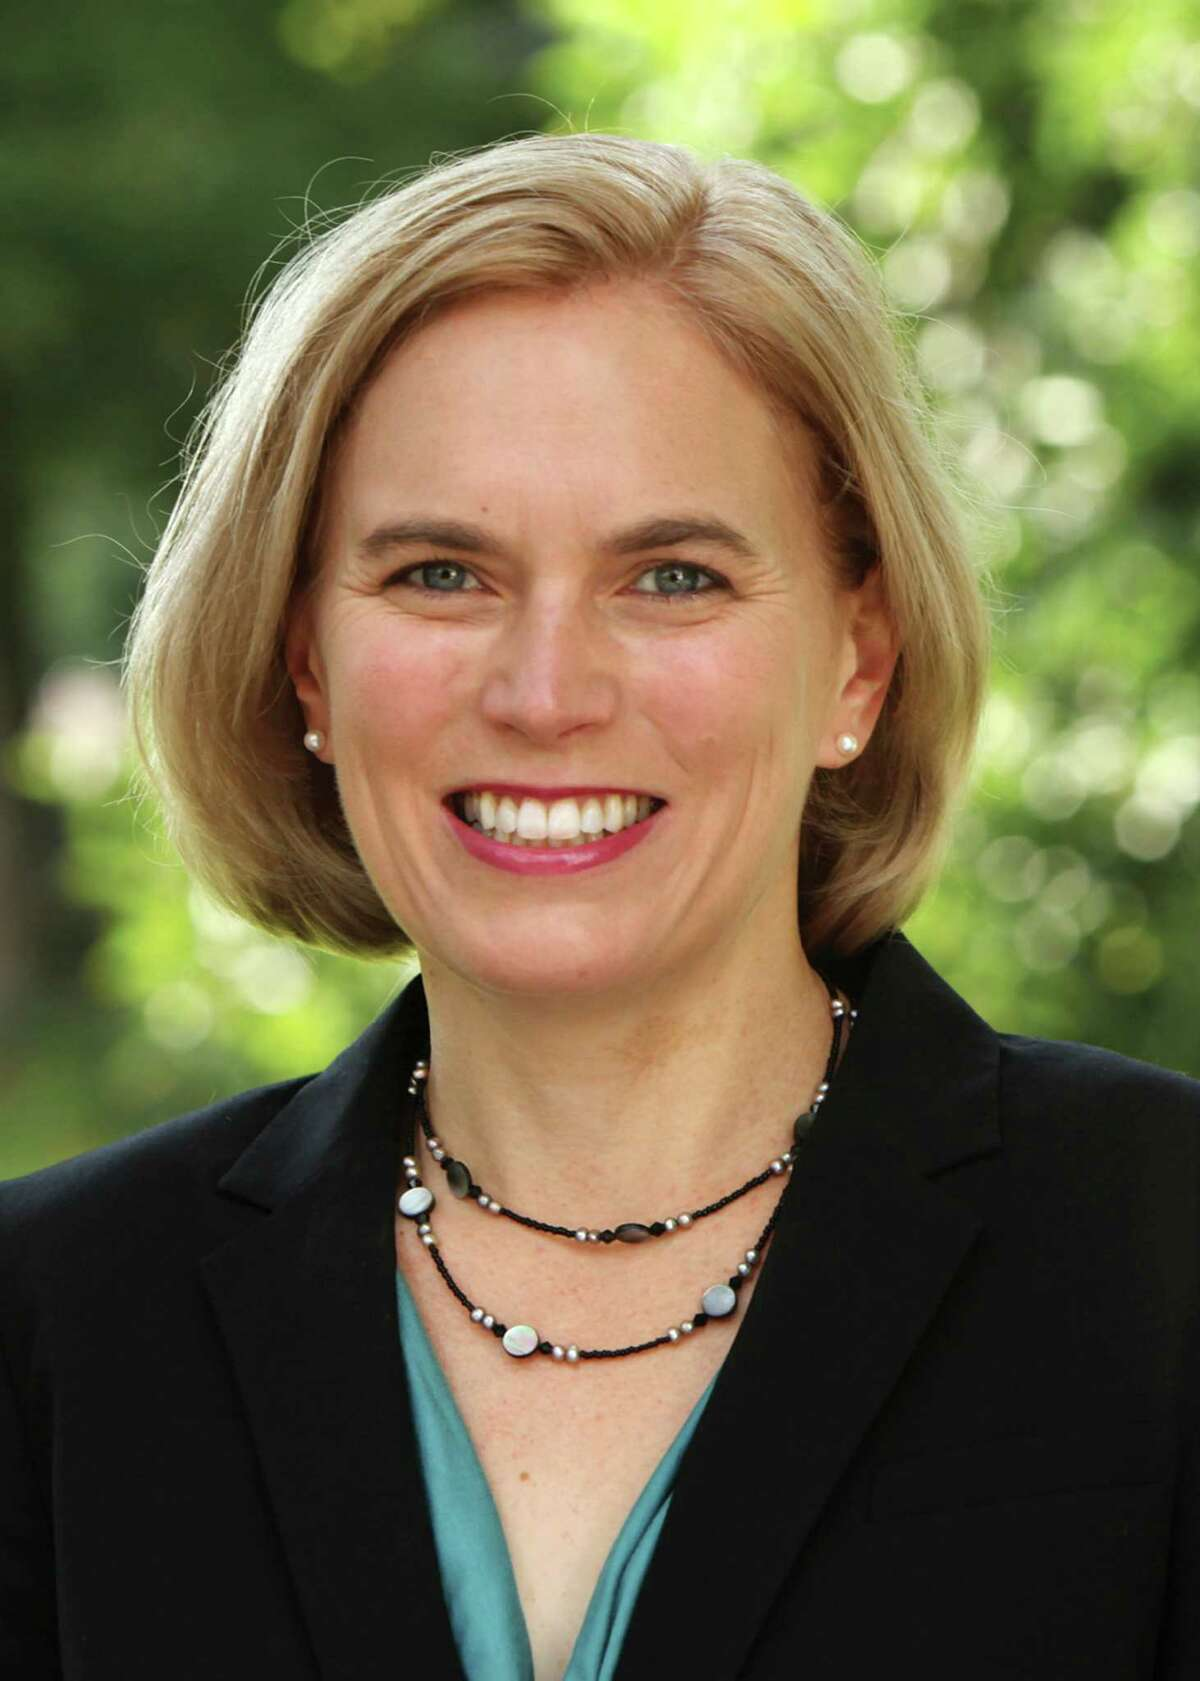 Lisa Romano is the Democratic Party's candidate for the 106th General Assembly seat.